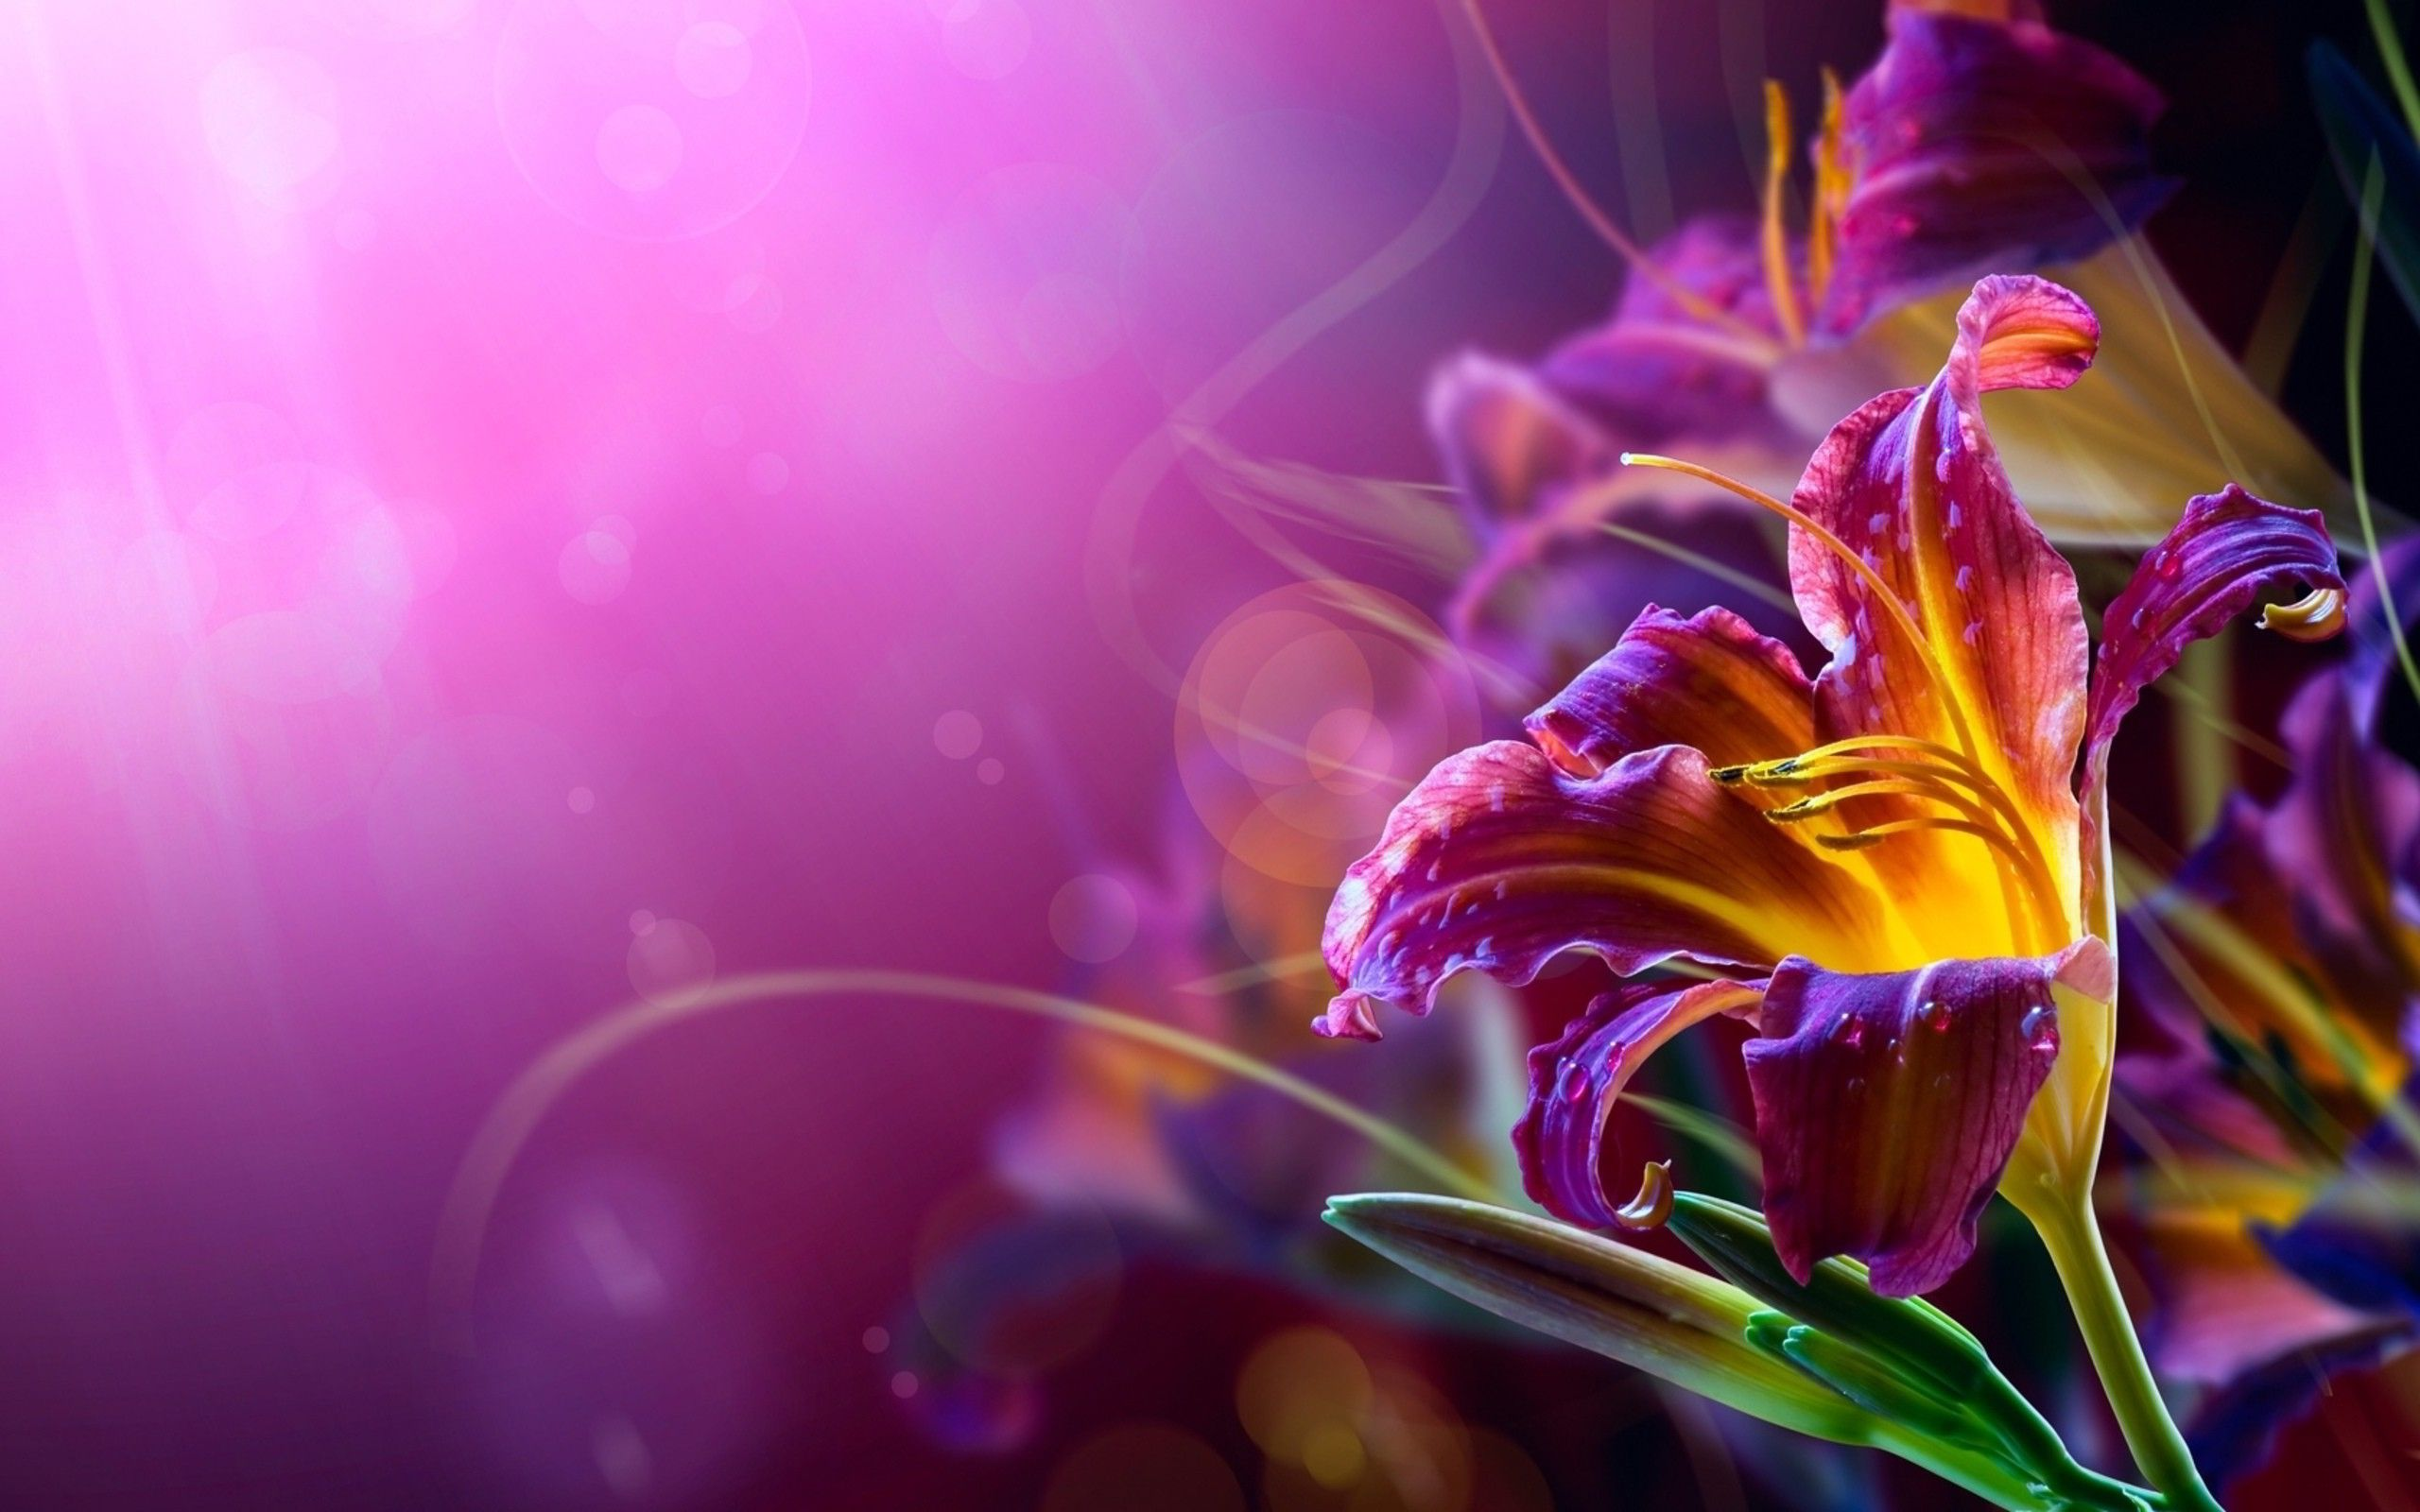 Abstract Flower Wallpapers Top Free Abstract Flower Backgrounds